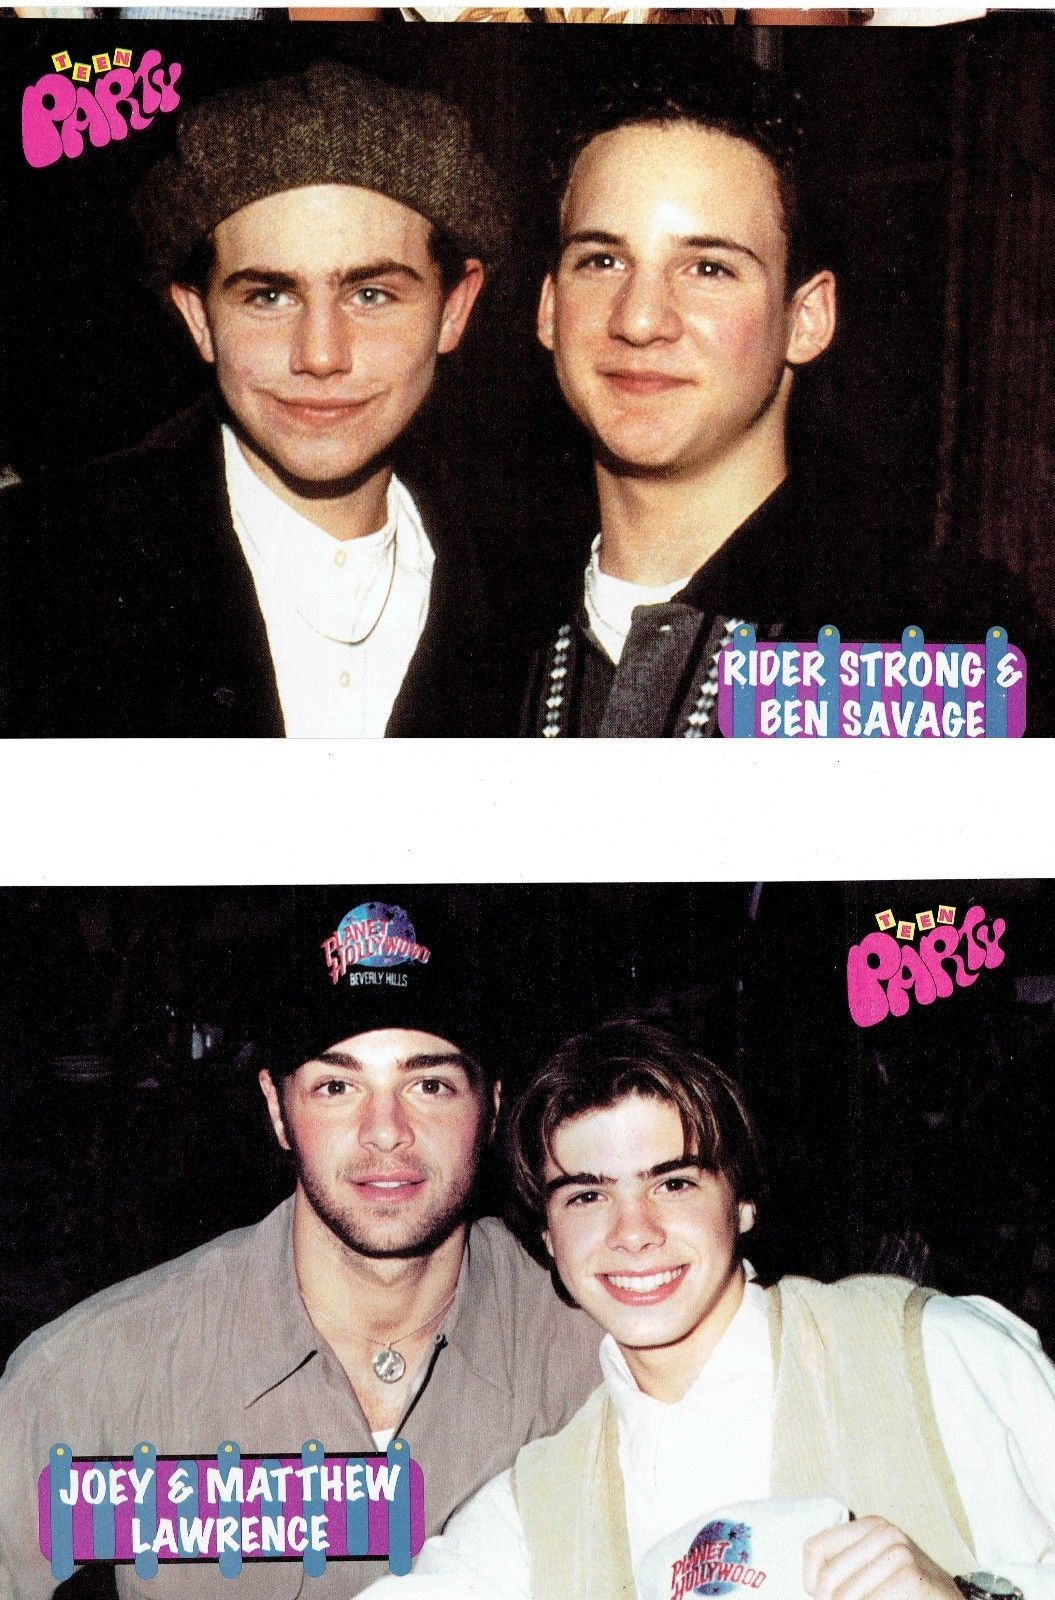 Ben Savage Rider Strong Joey Lawrence teen magazine pinup clipping Tiger Beat